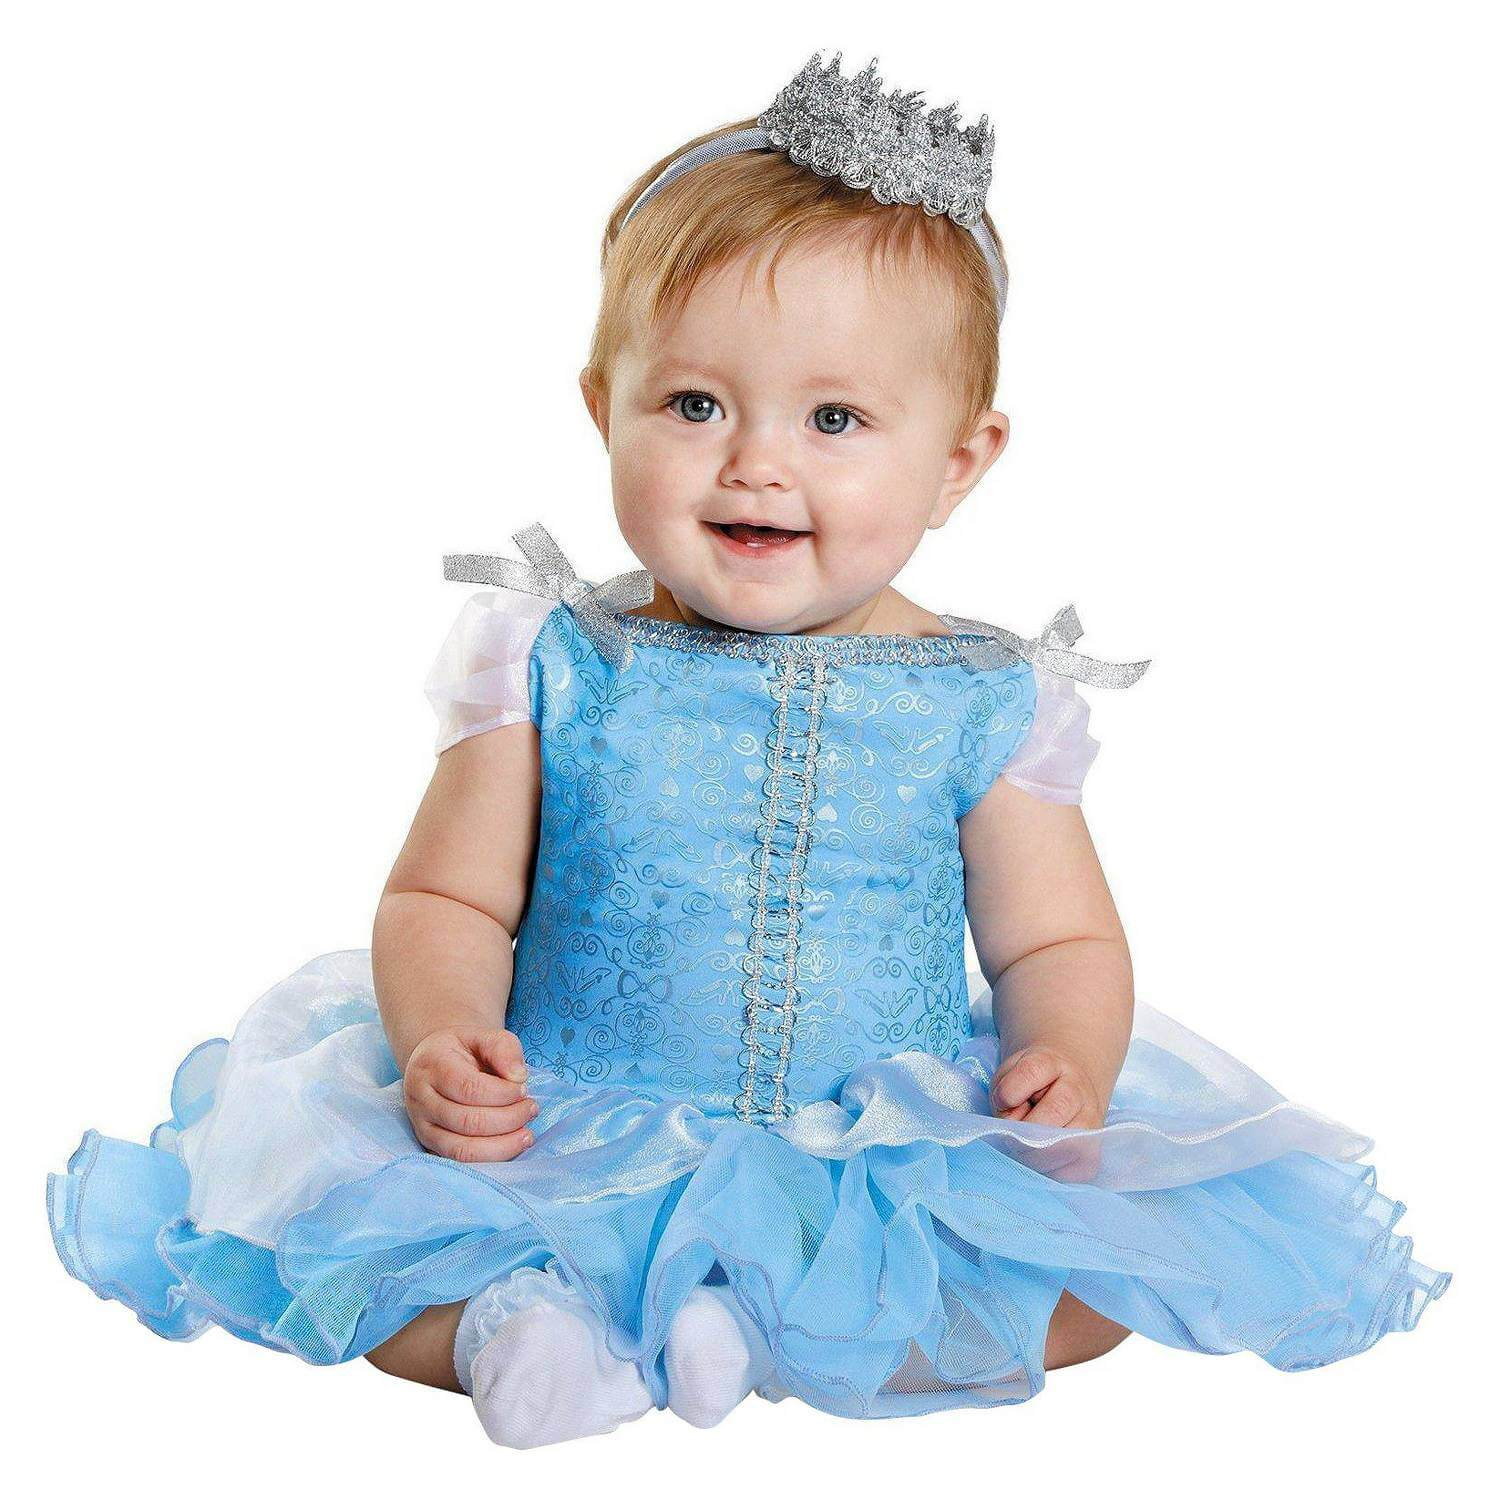 adorable halloween costumes for babies/infants - festival around the